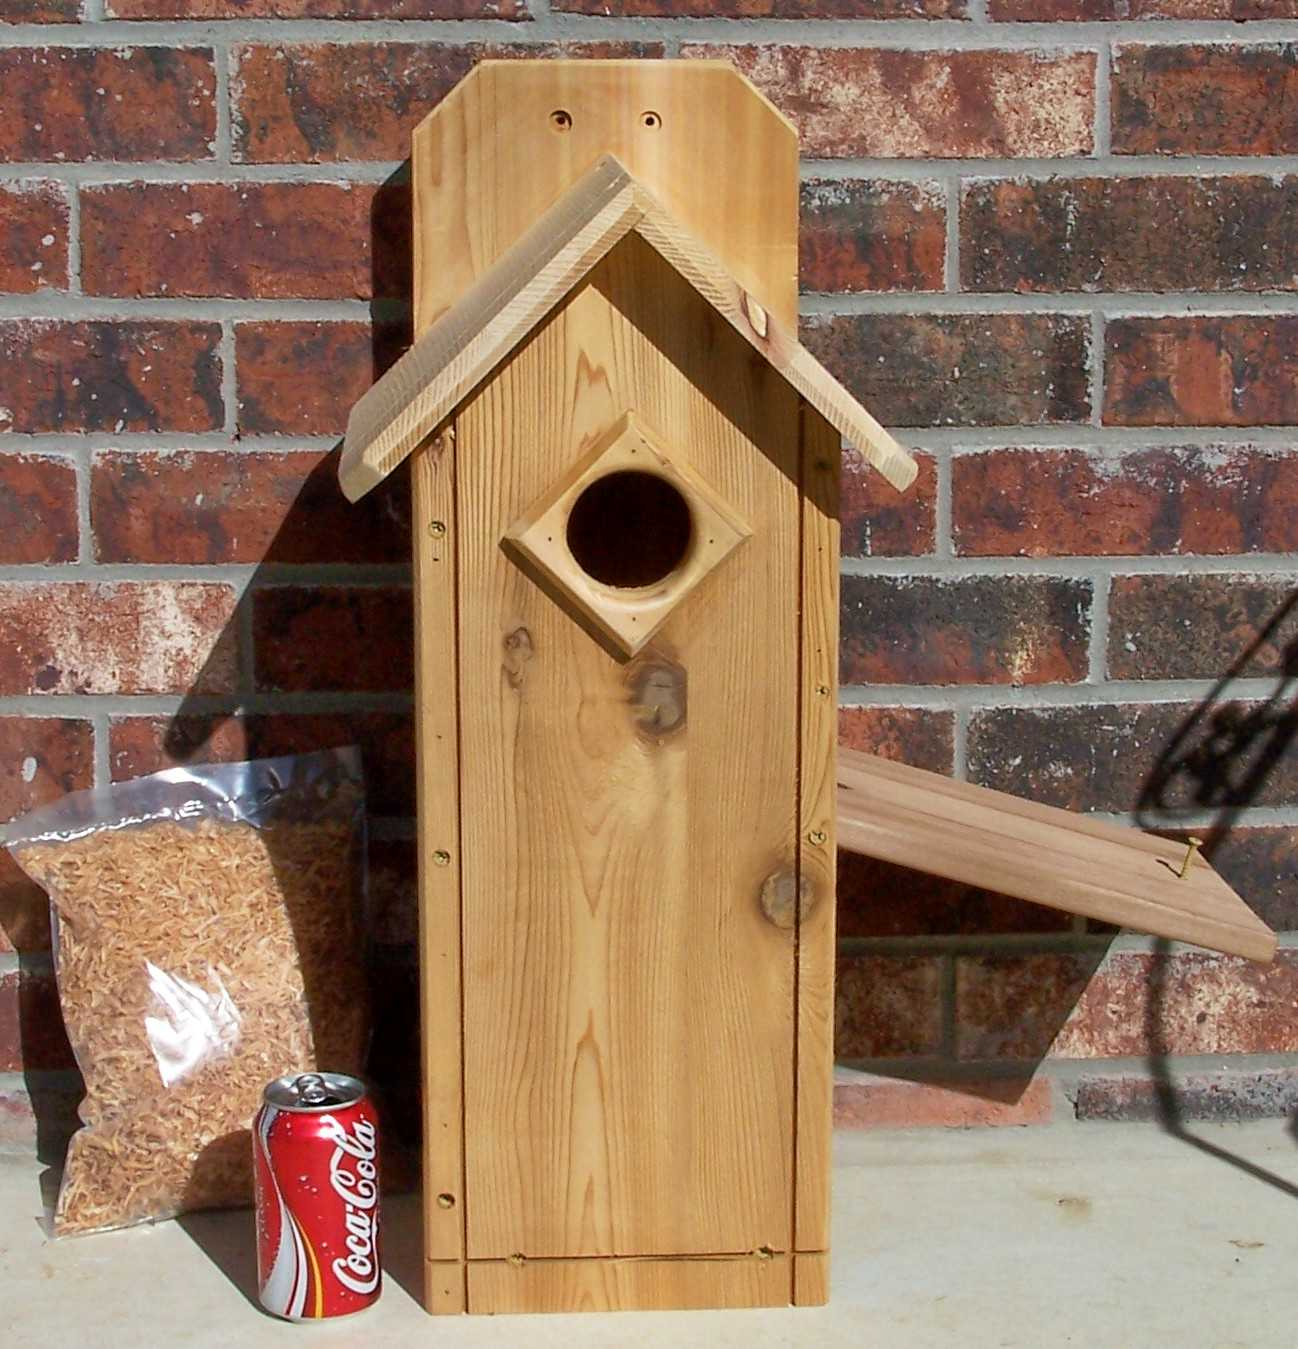 Northern Flicker Woodpecker house